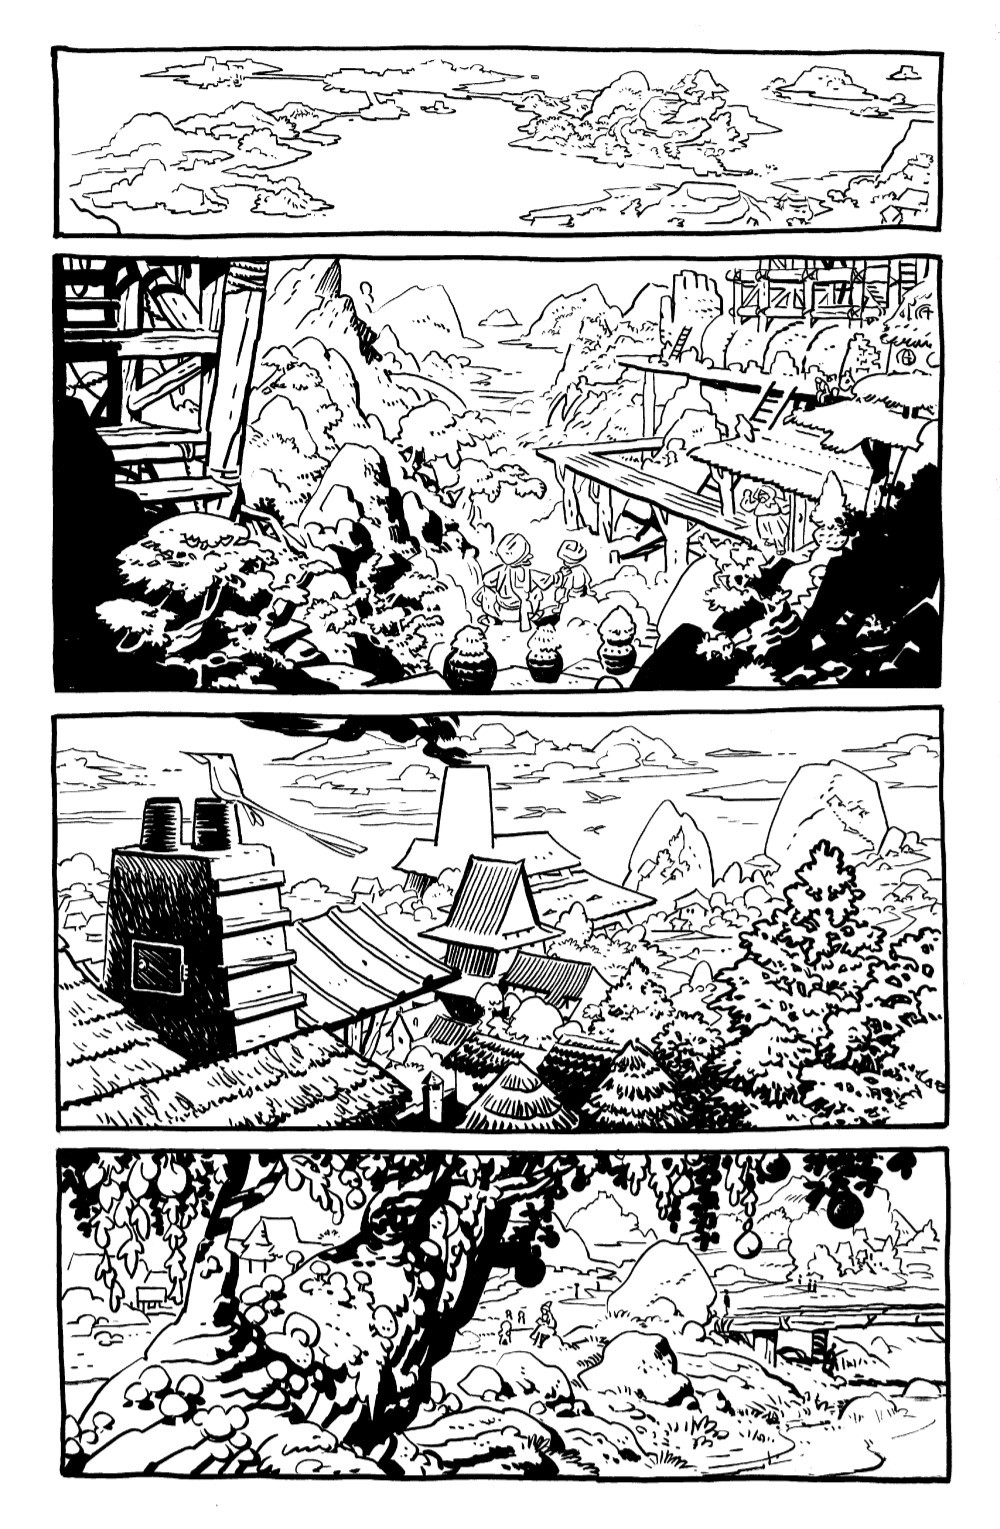 JONNA-1-DB-PGS-01-32-FNL-1-03 ComicList Previews: JONNA AND THE UNPOSSIBLE MONSTERS #1 (DRAWING BOARD EDITION)